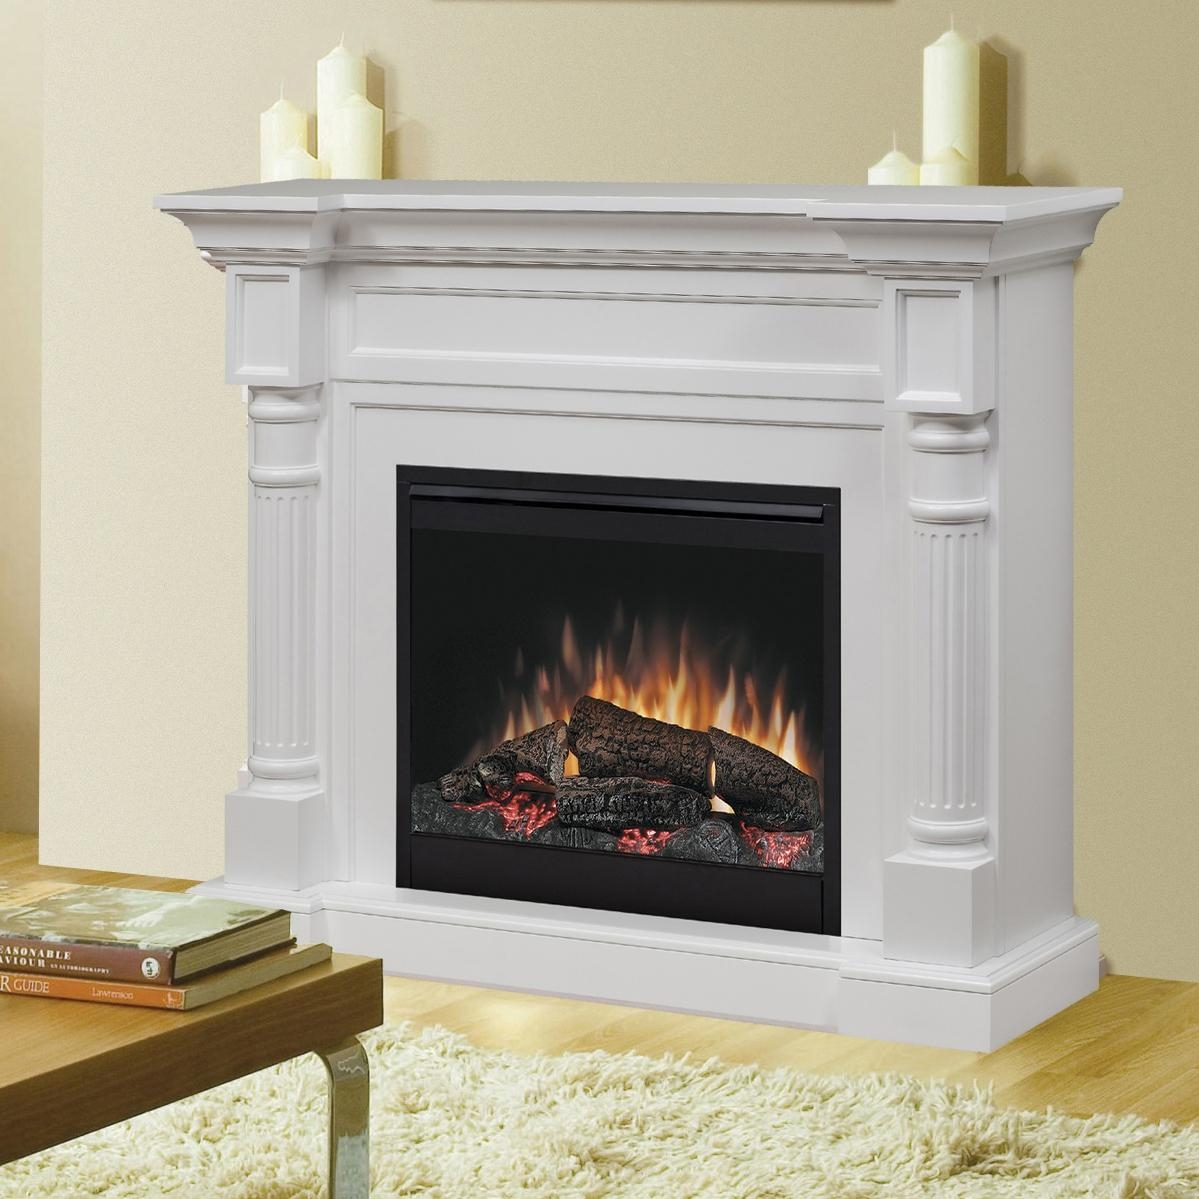 62 inch white electric fireplace 62 inch white electric fireplace unique fresh cheap 62 grand antique white electric fireplac 8859